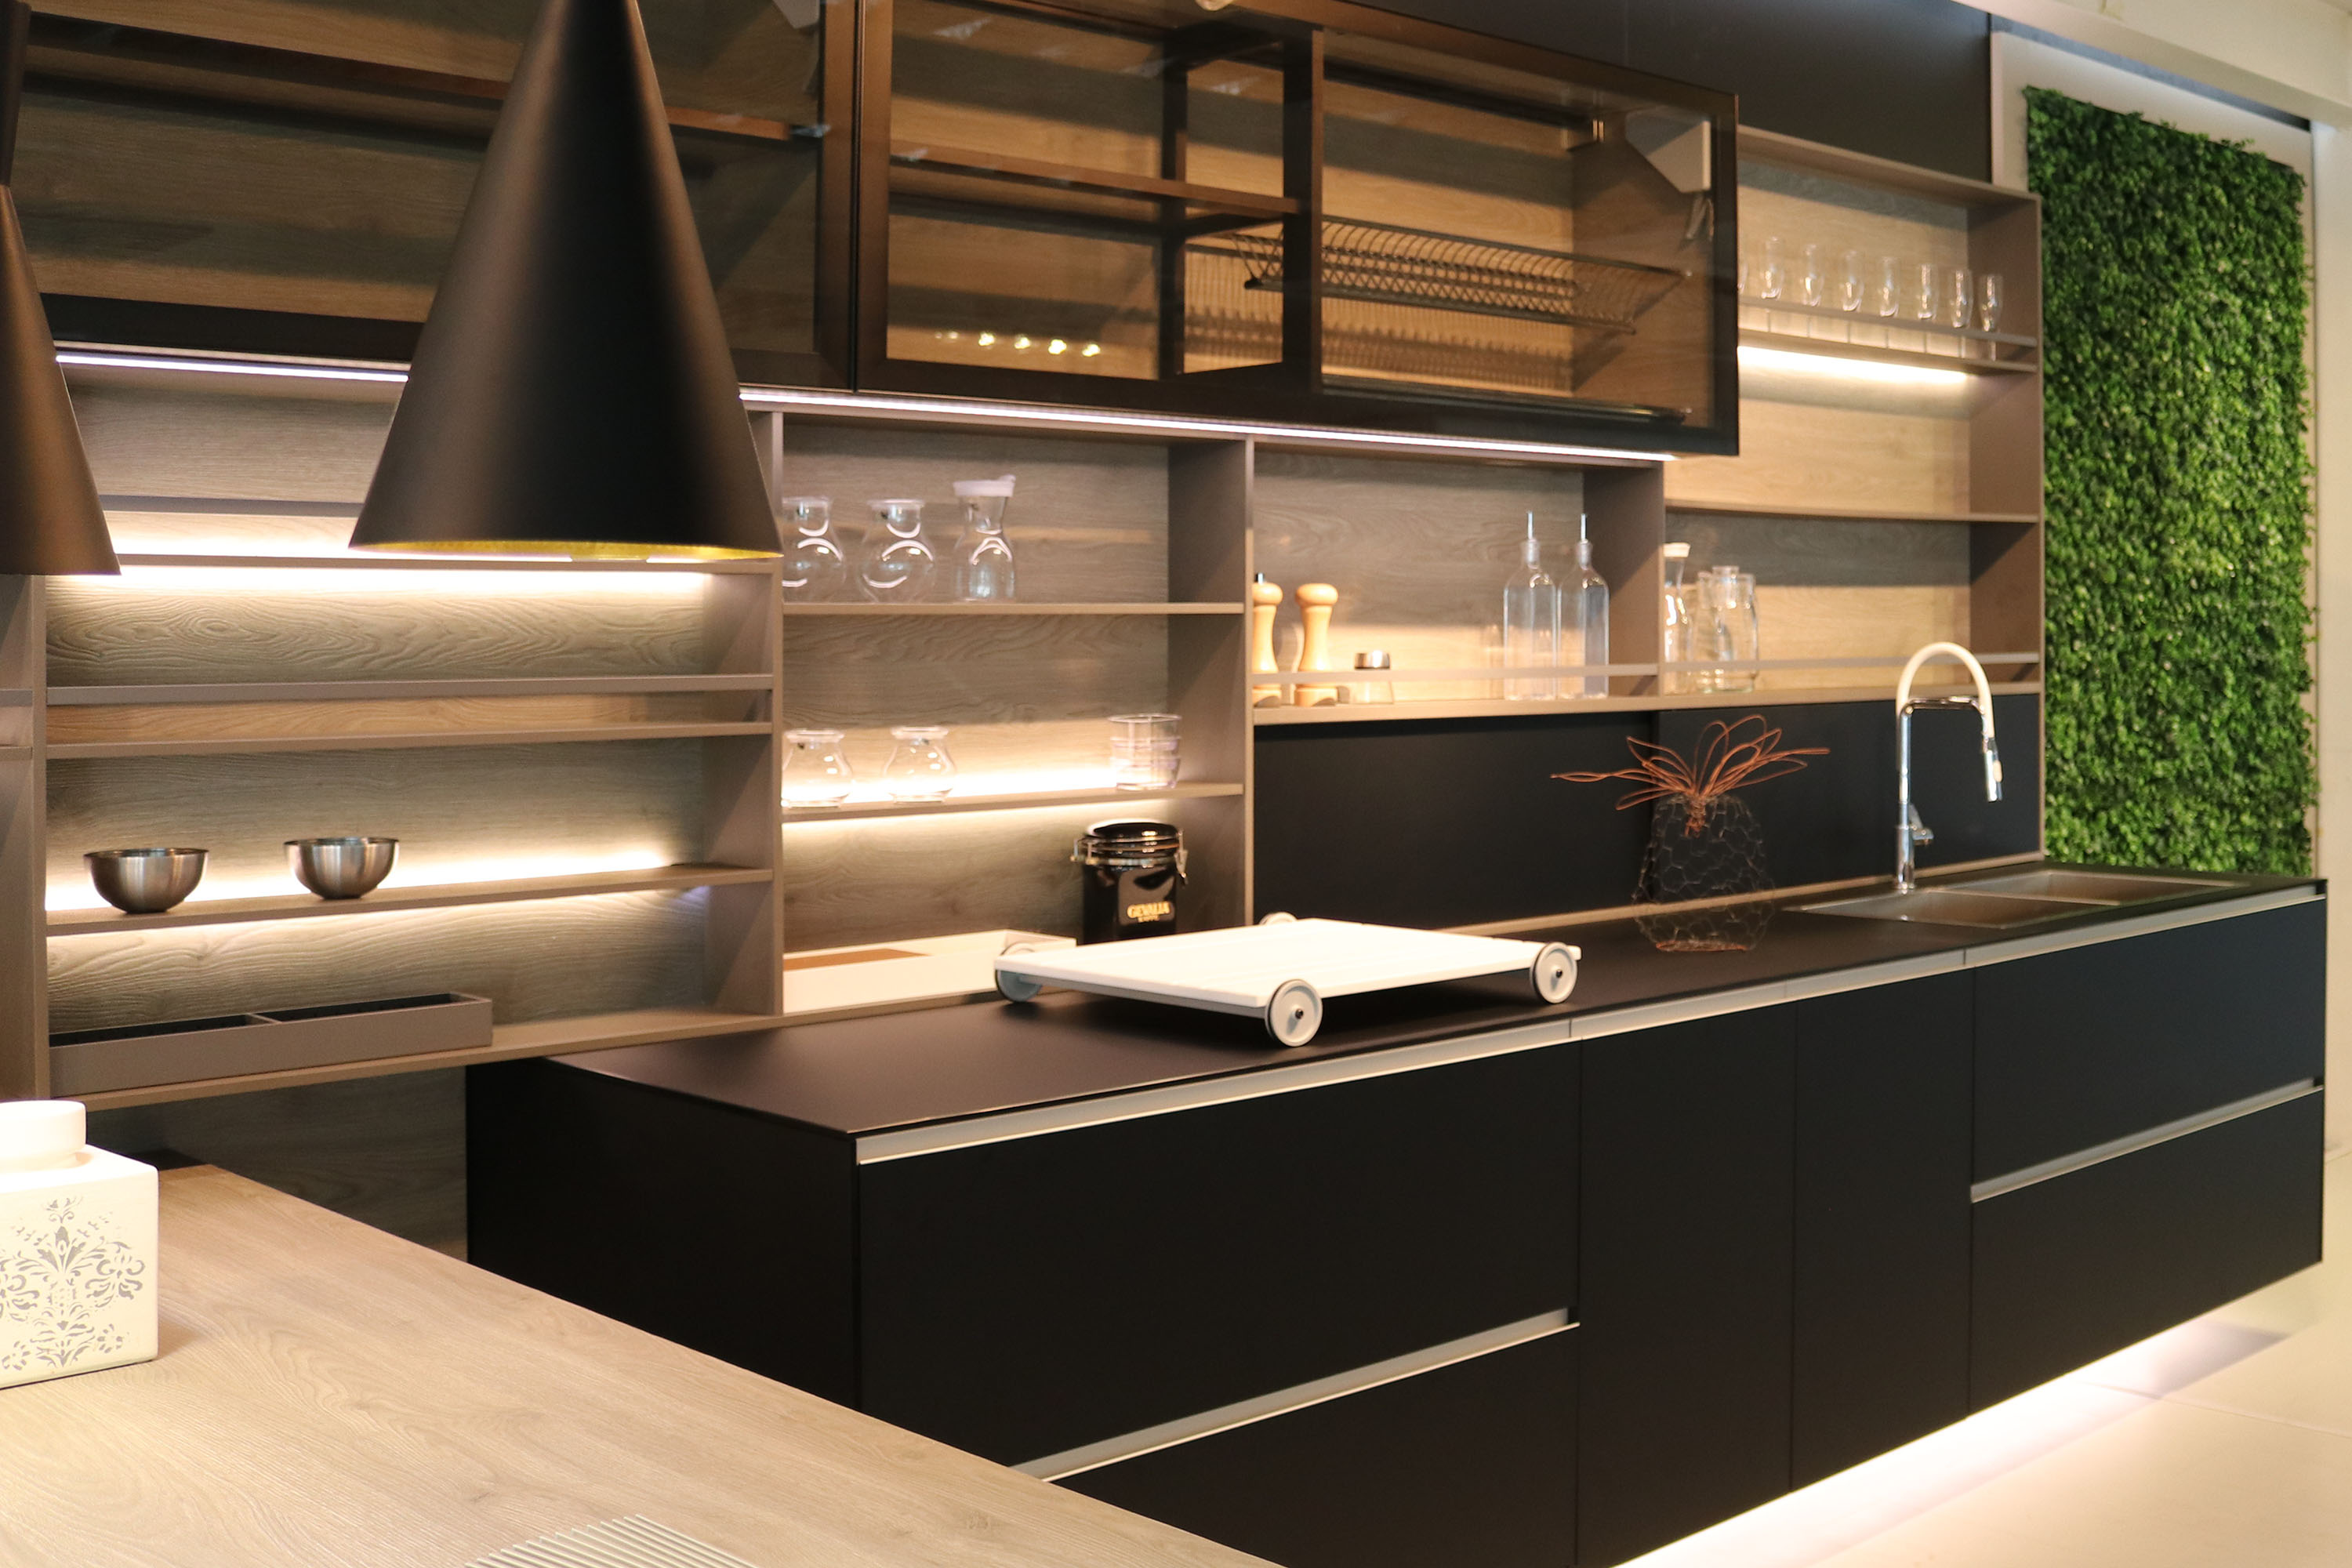 indoor cocina kitchen